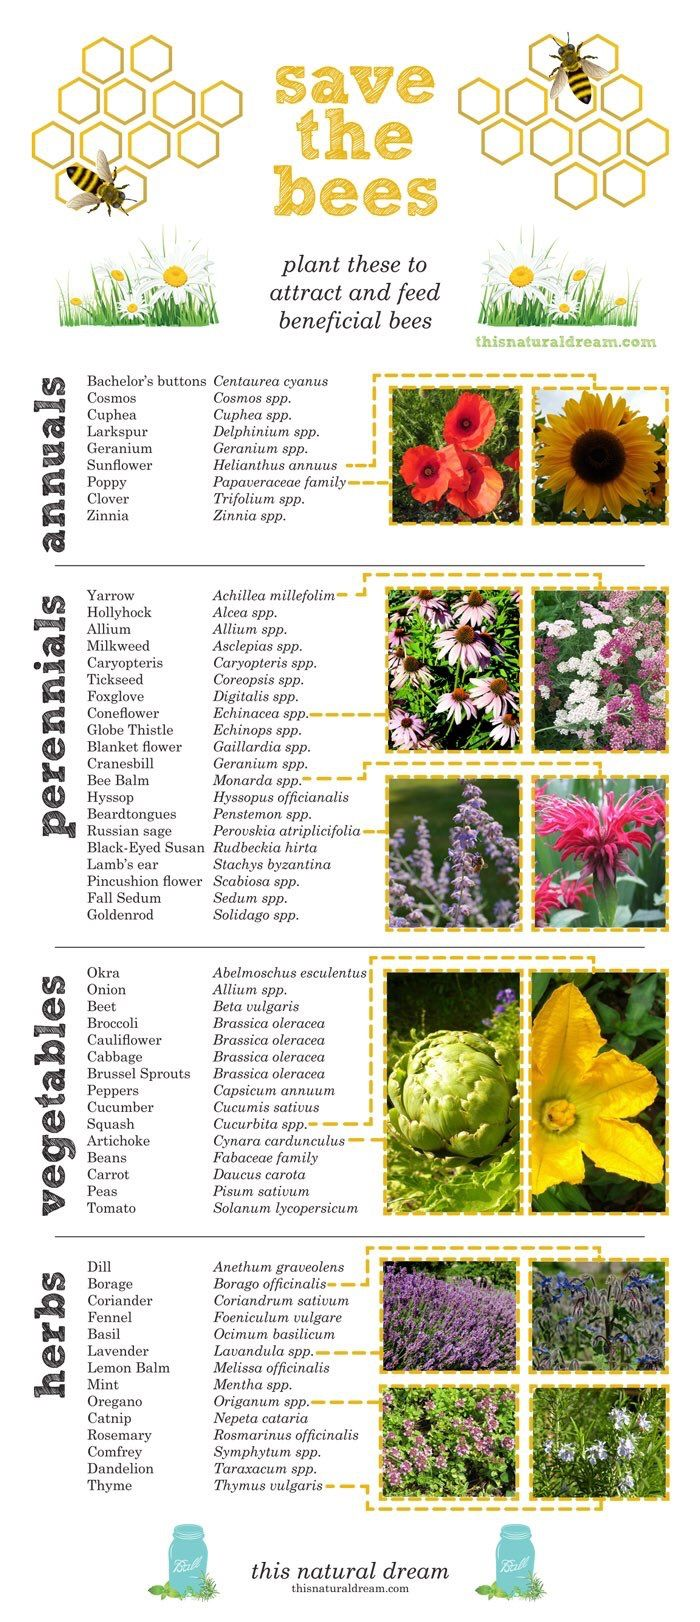 What to plant for beneficial bees